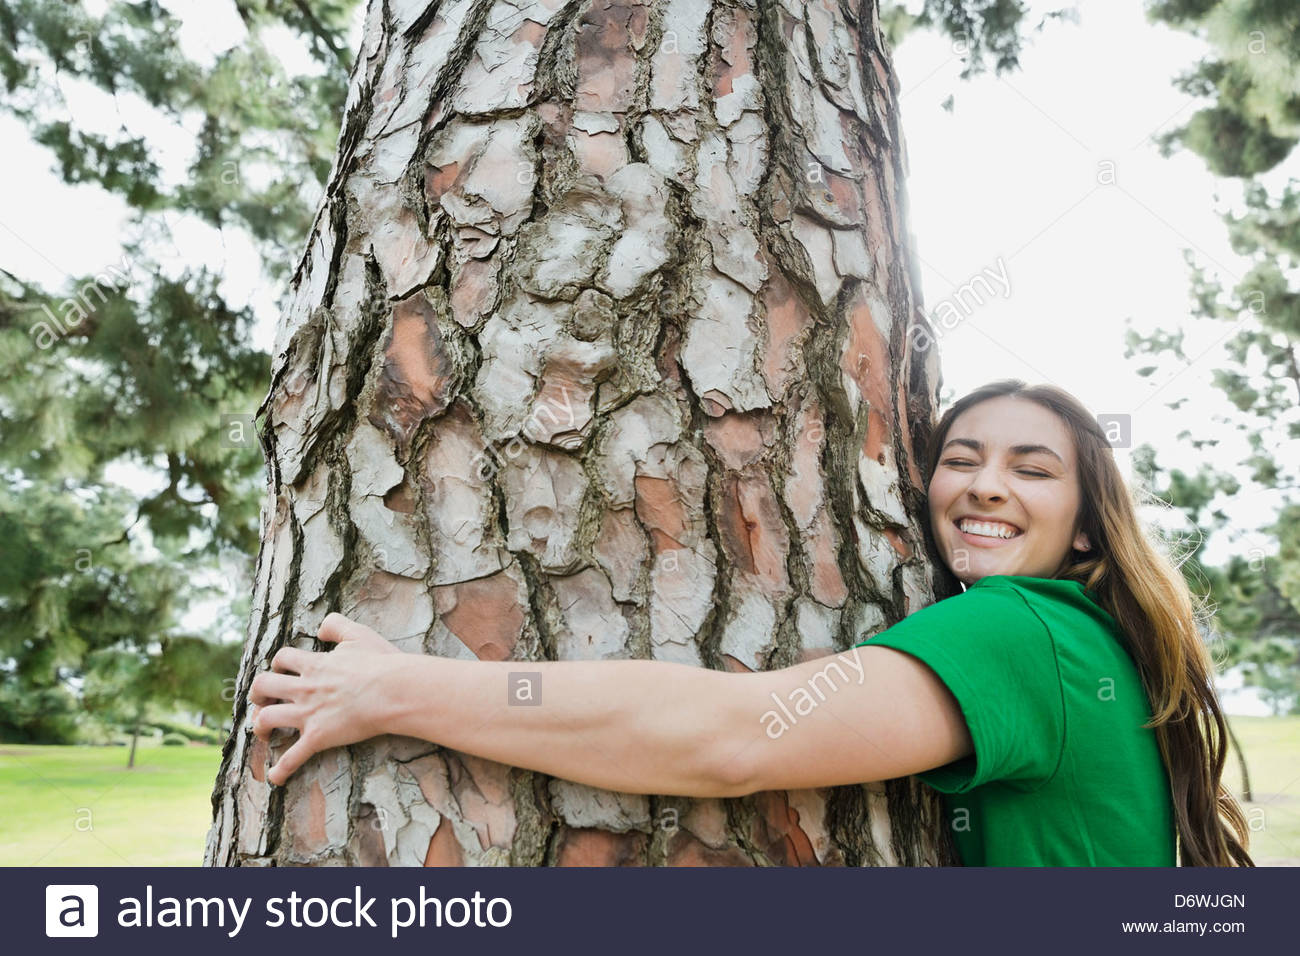 Vue latérale d'happy young woman hugging tree in park Photo Stock